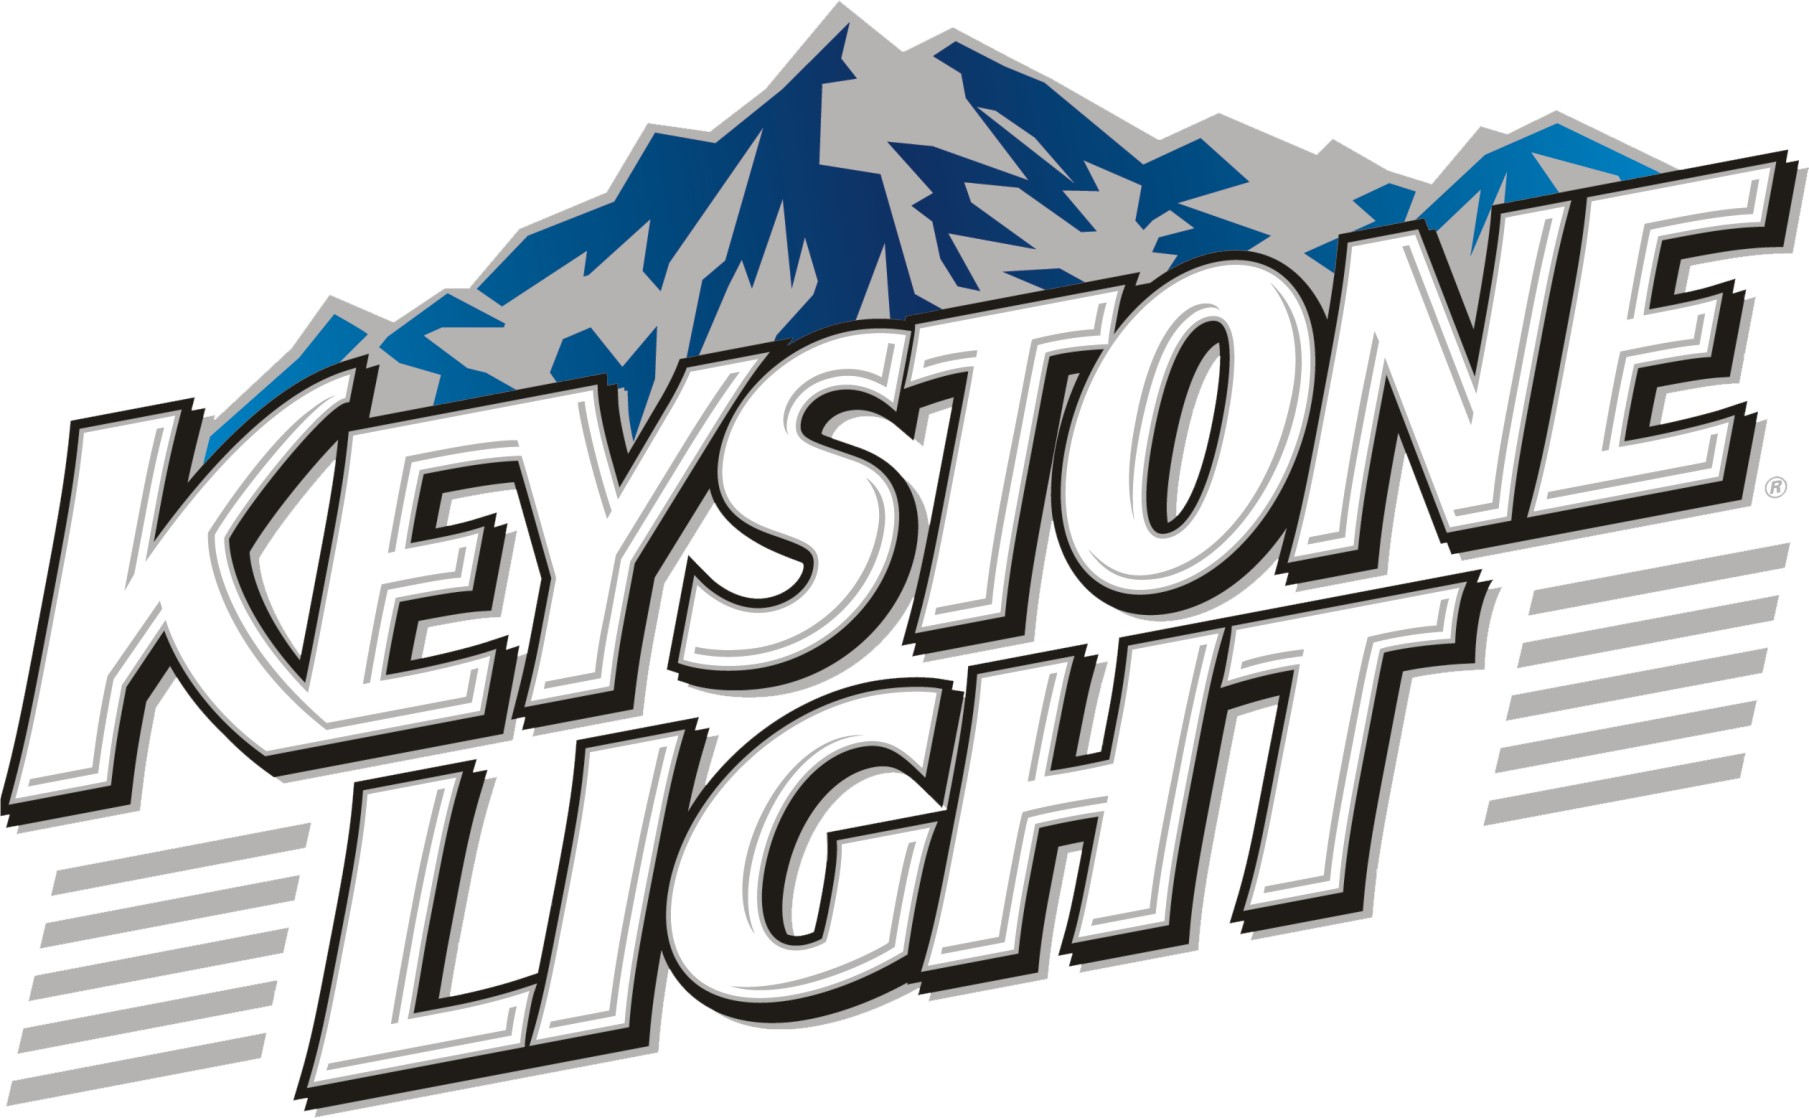 Keystone Light.jpg